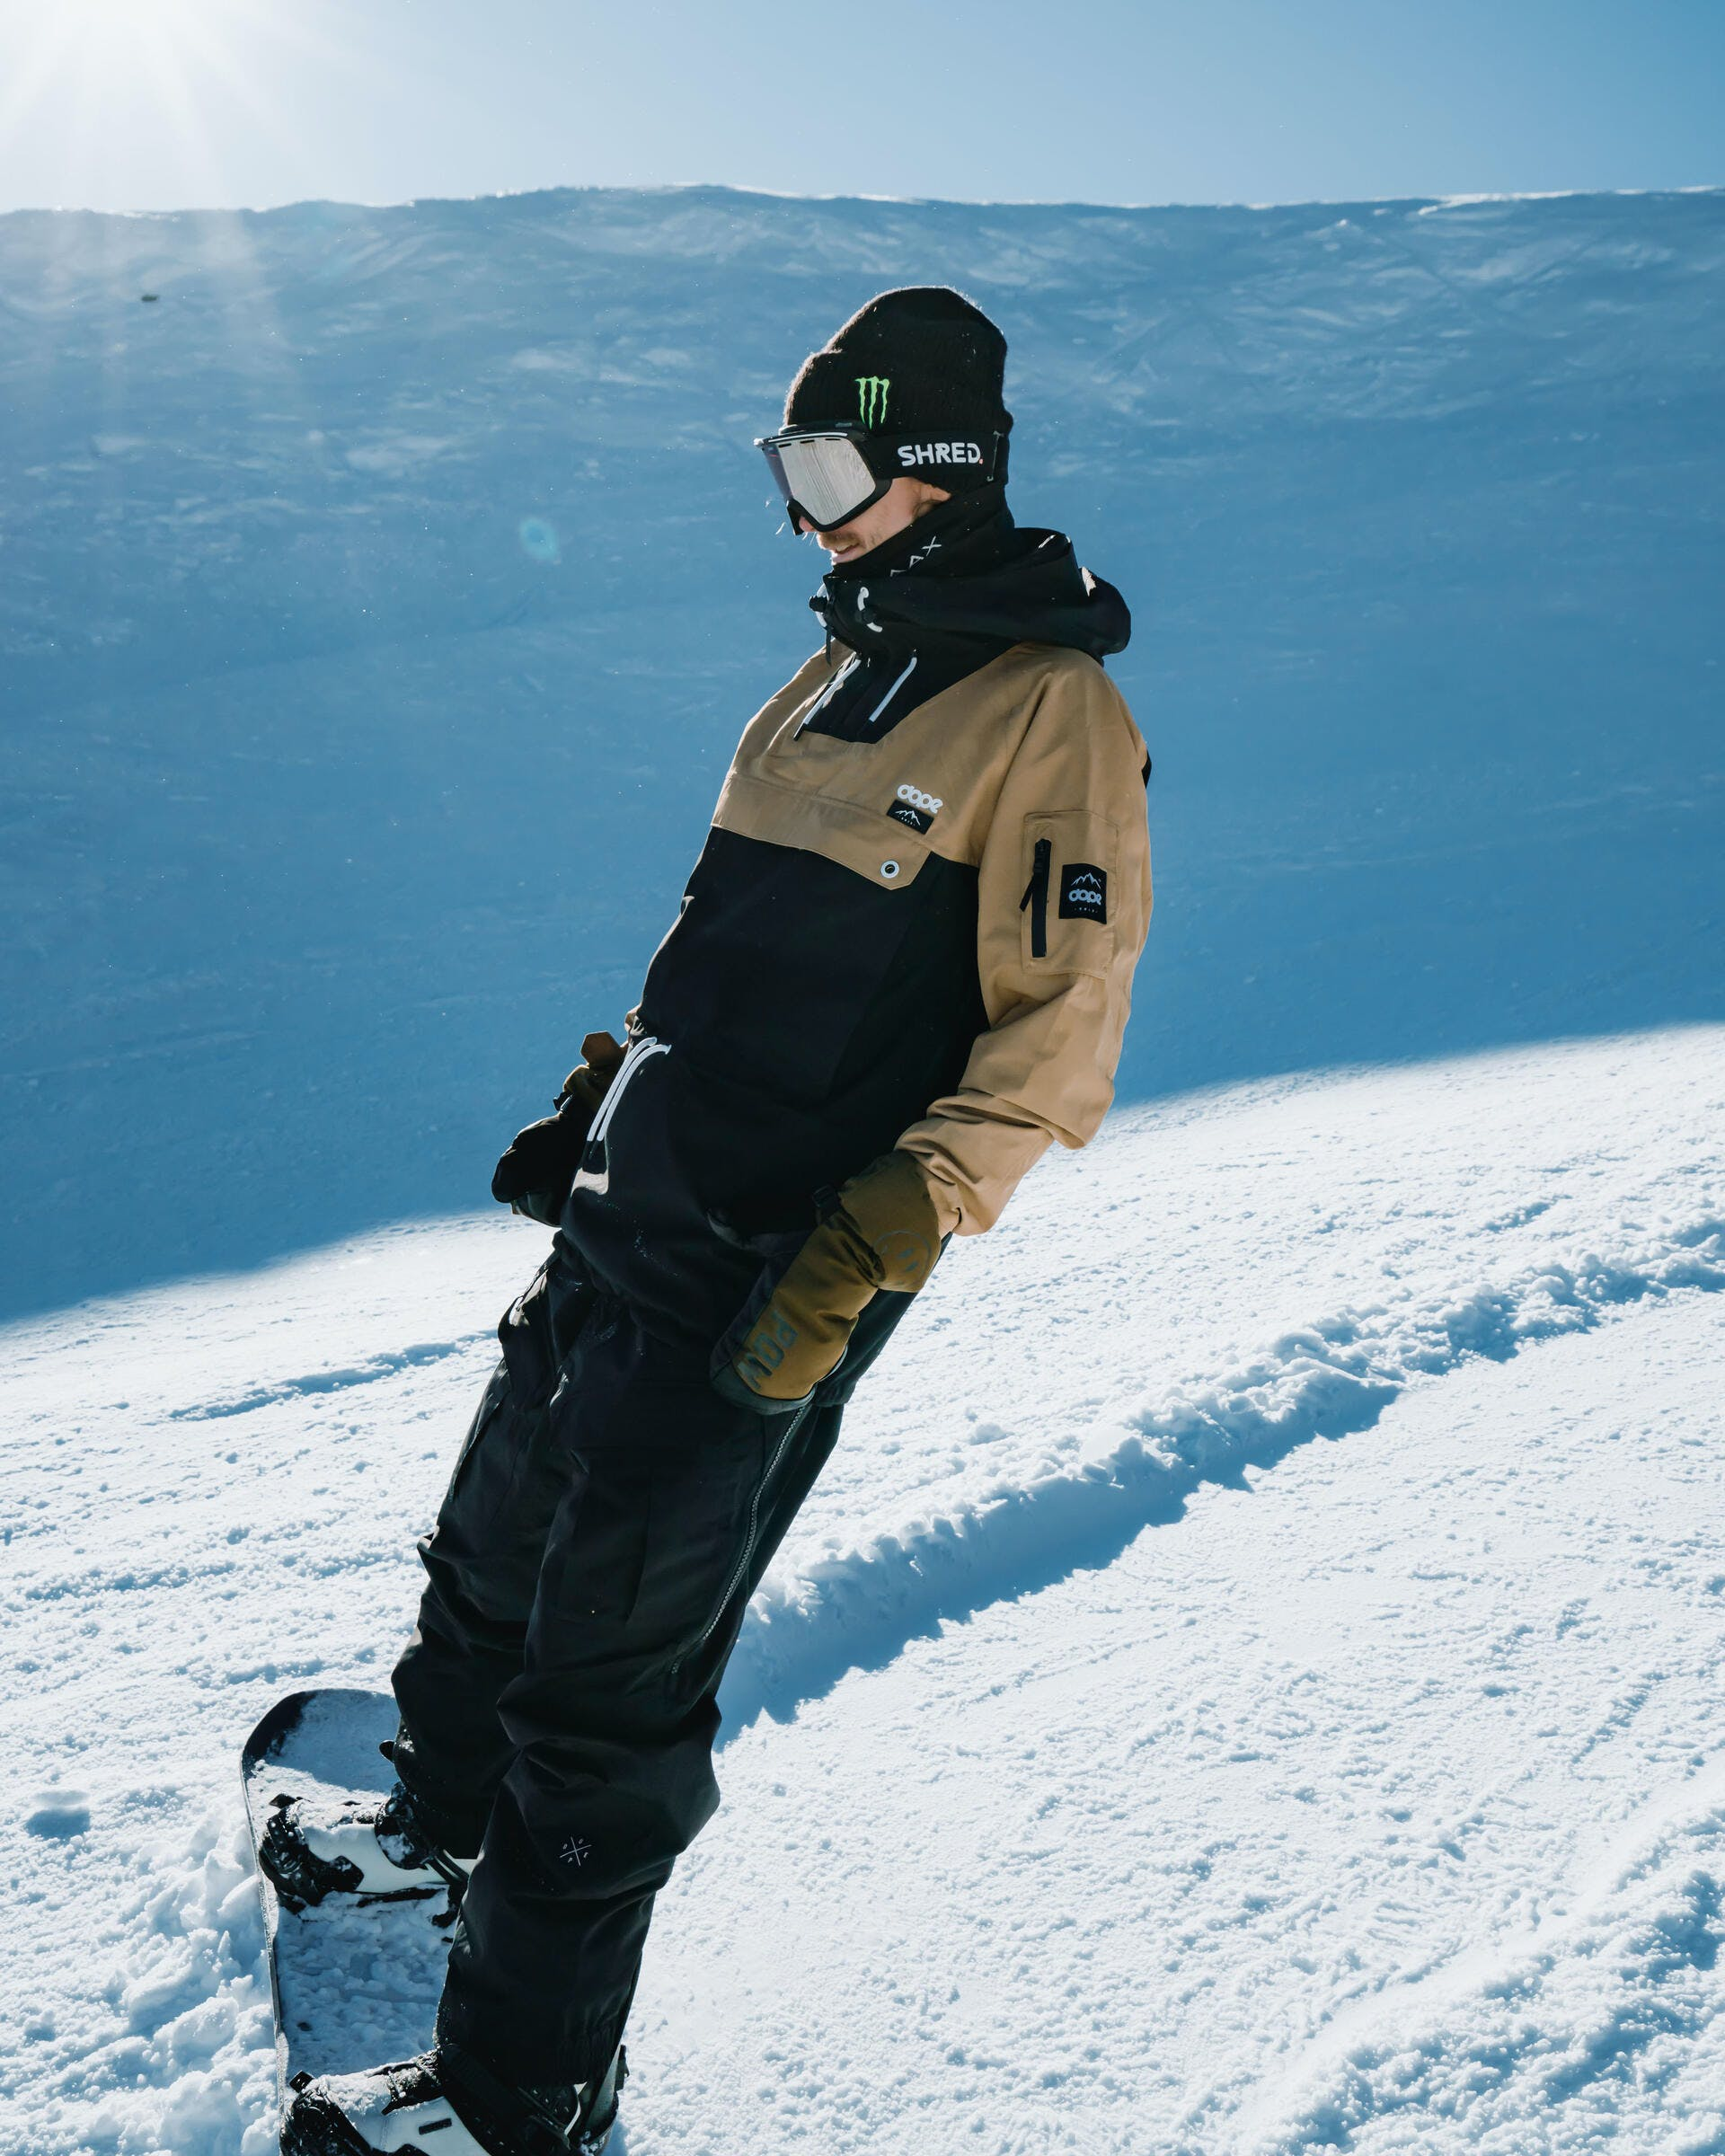 types of snowboard pants